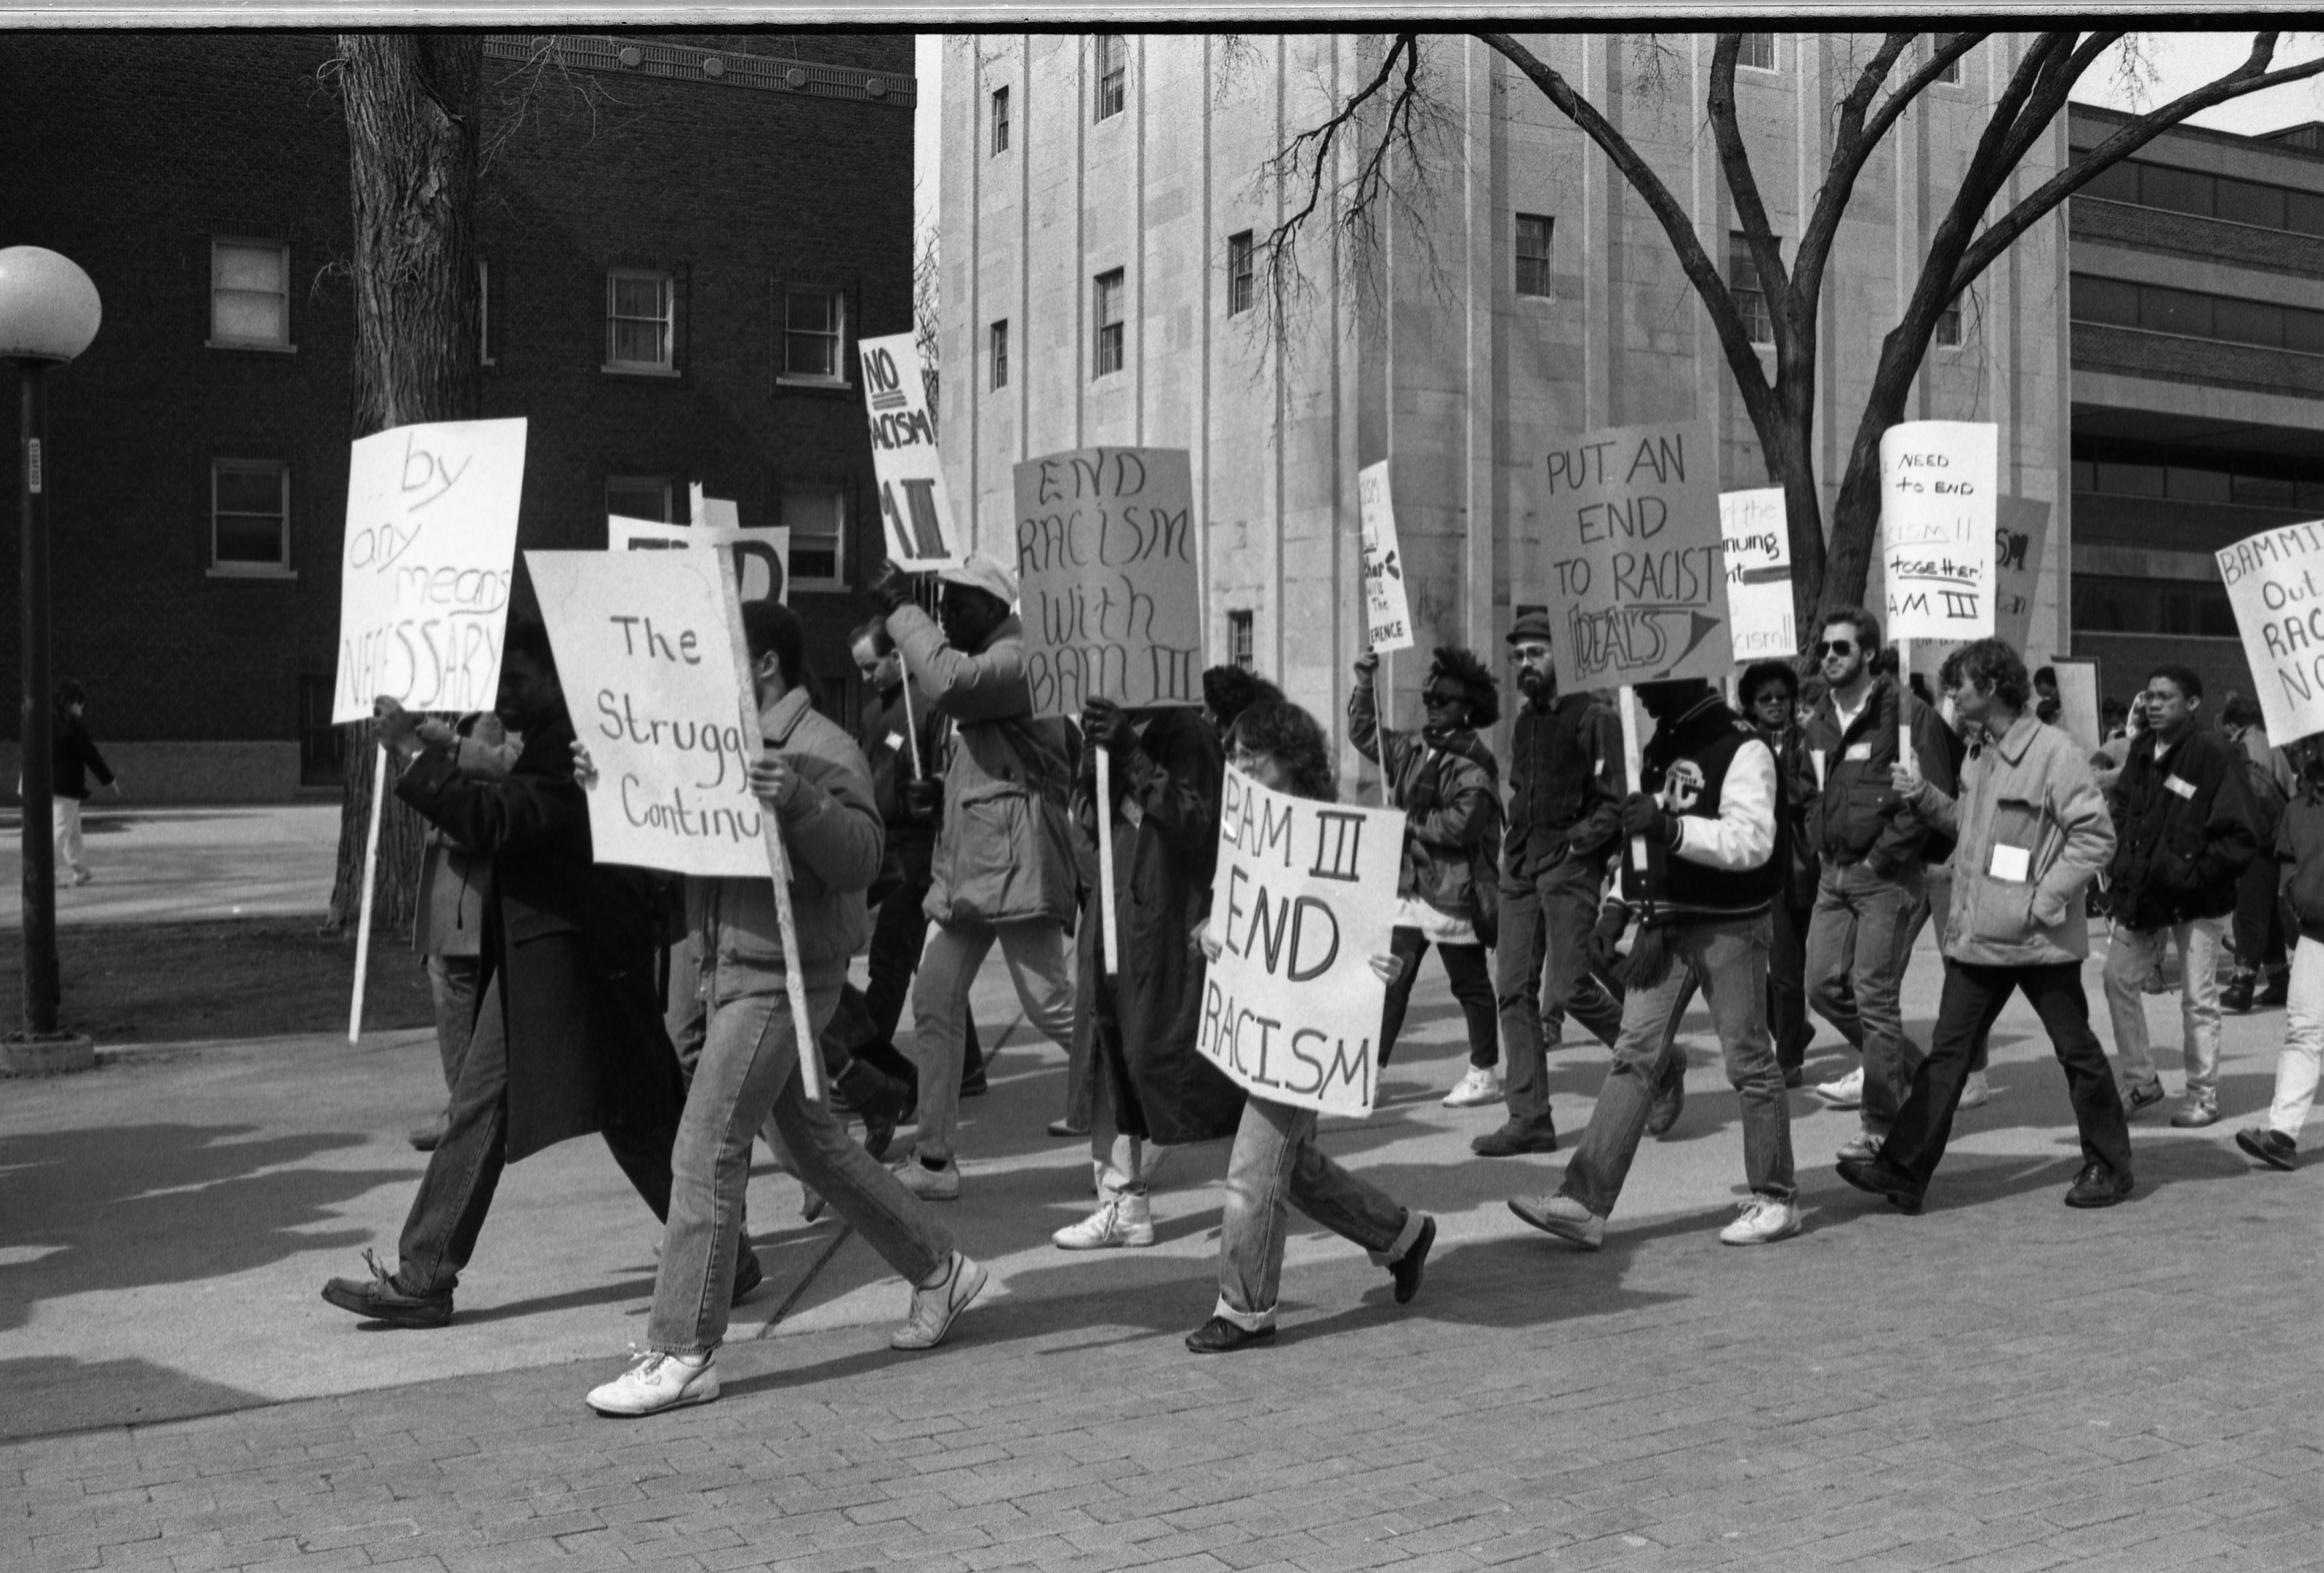 Image from Black Action Movement III Protesters March From Rackham To The Diag, March 18, 1987